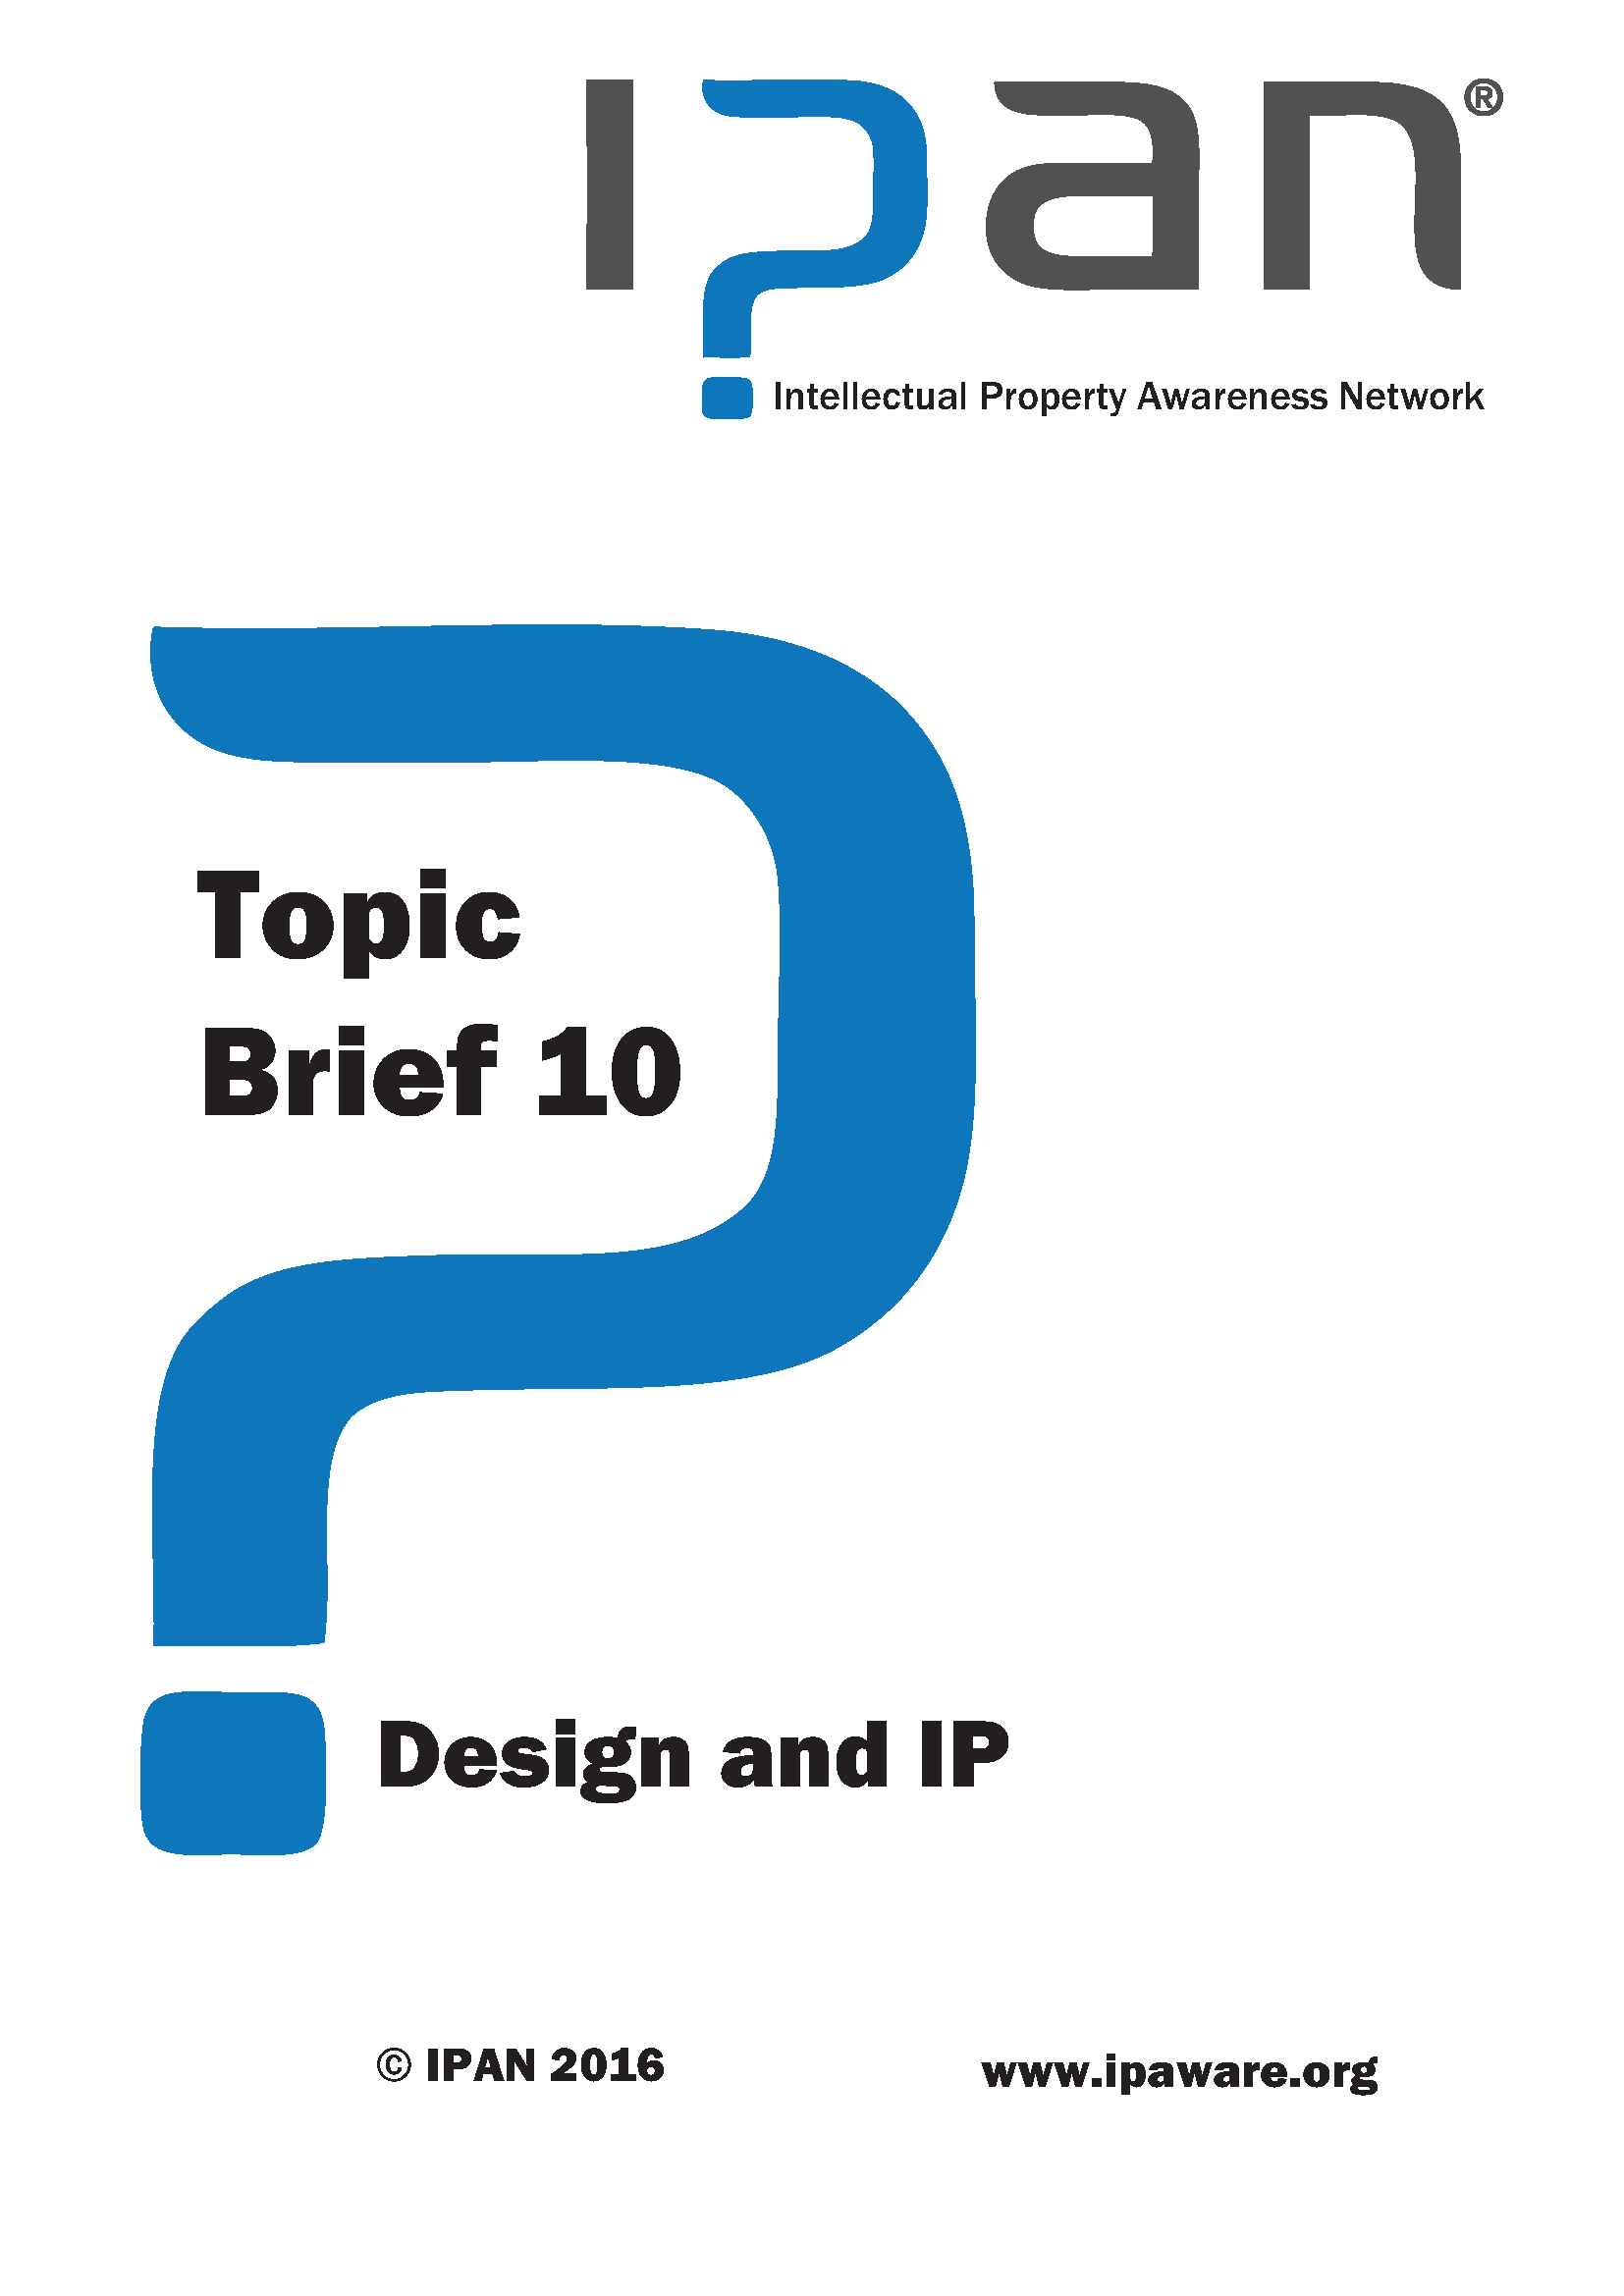 Design and IP